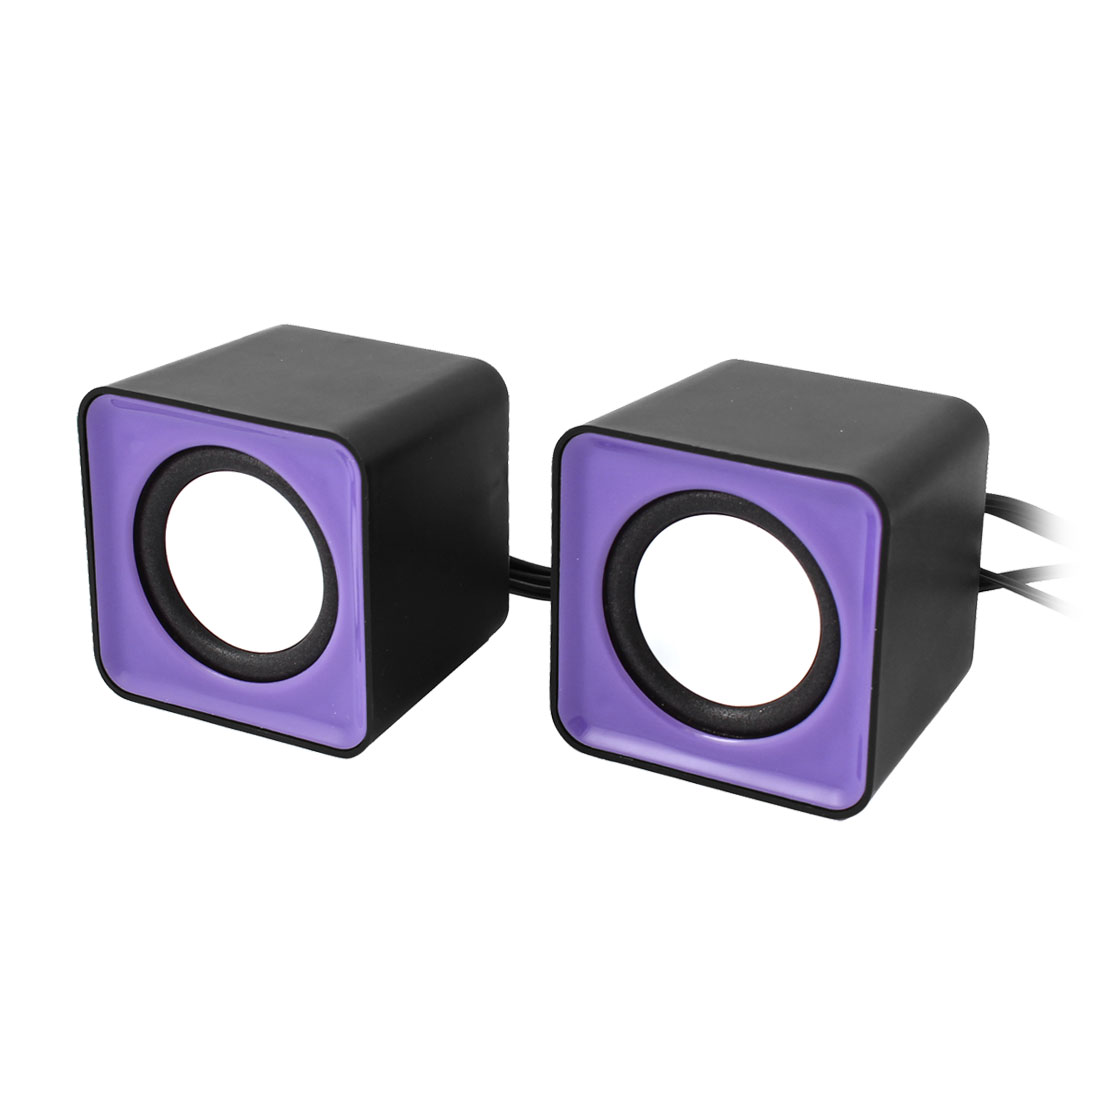 Pair Black Purple USB 2.0 3.5mm Stereo Plug Mini Multimedia Speaker for Laptop PC